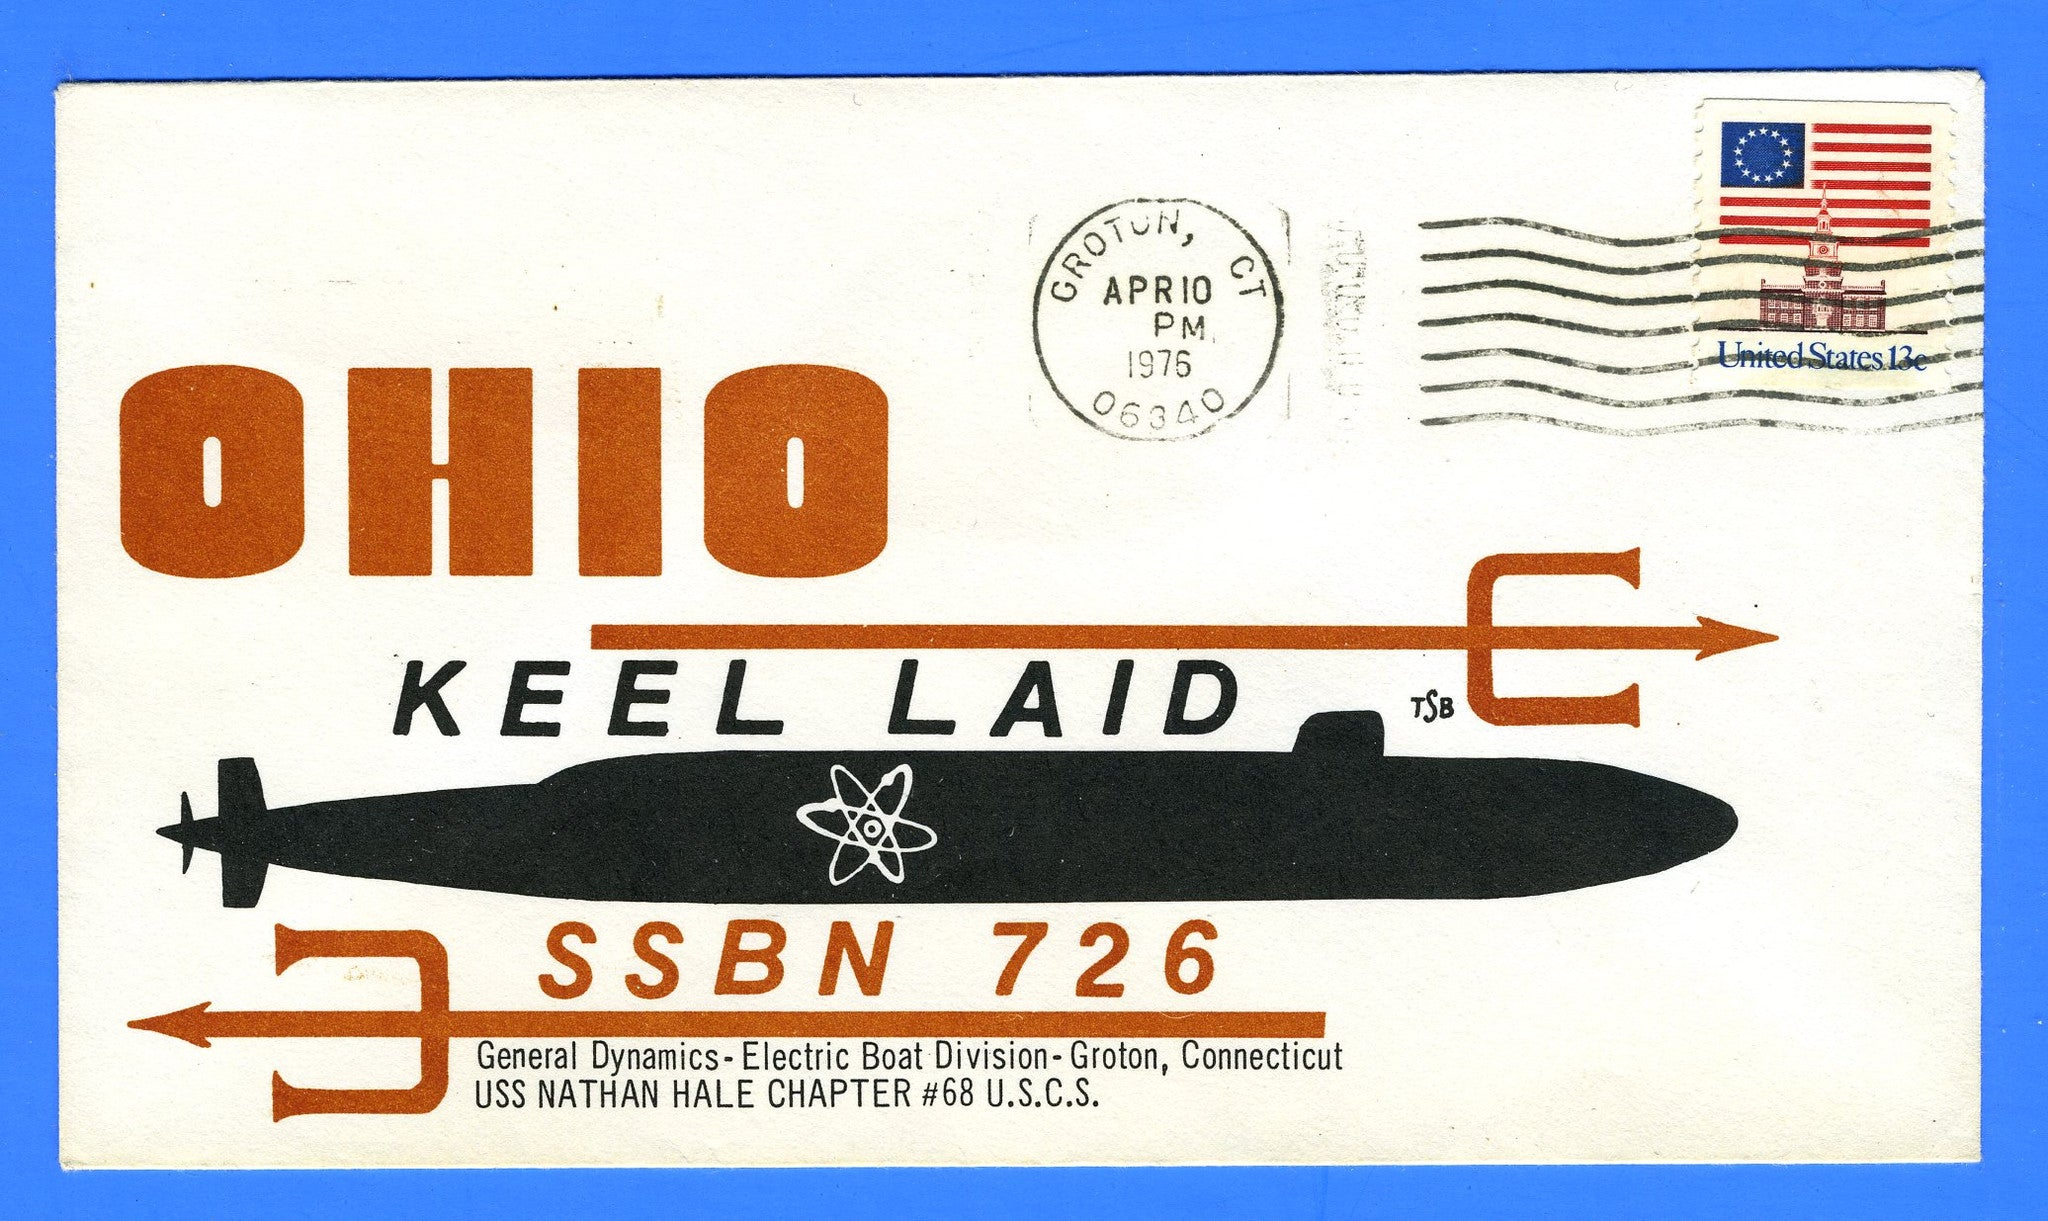 USS Ohio SSBN-726 Keel Laid April 10, 1976